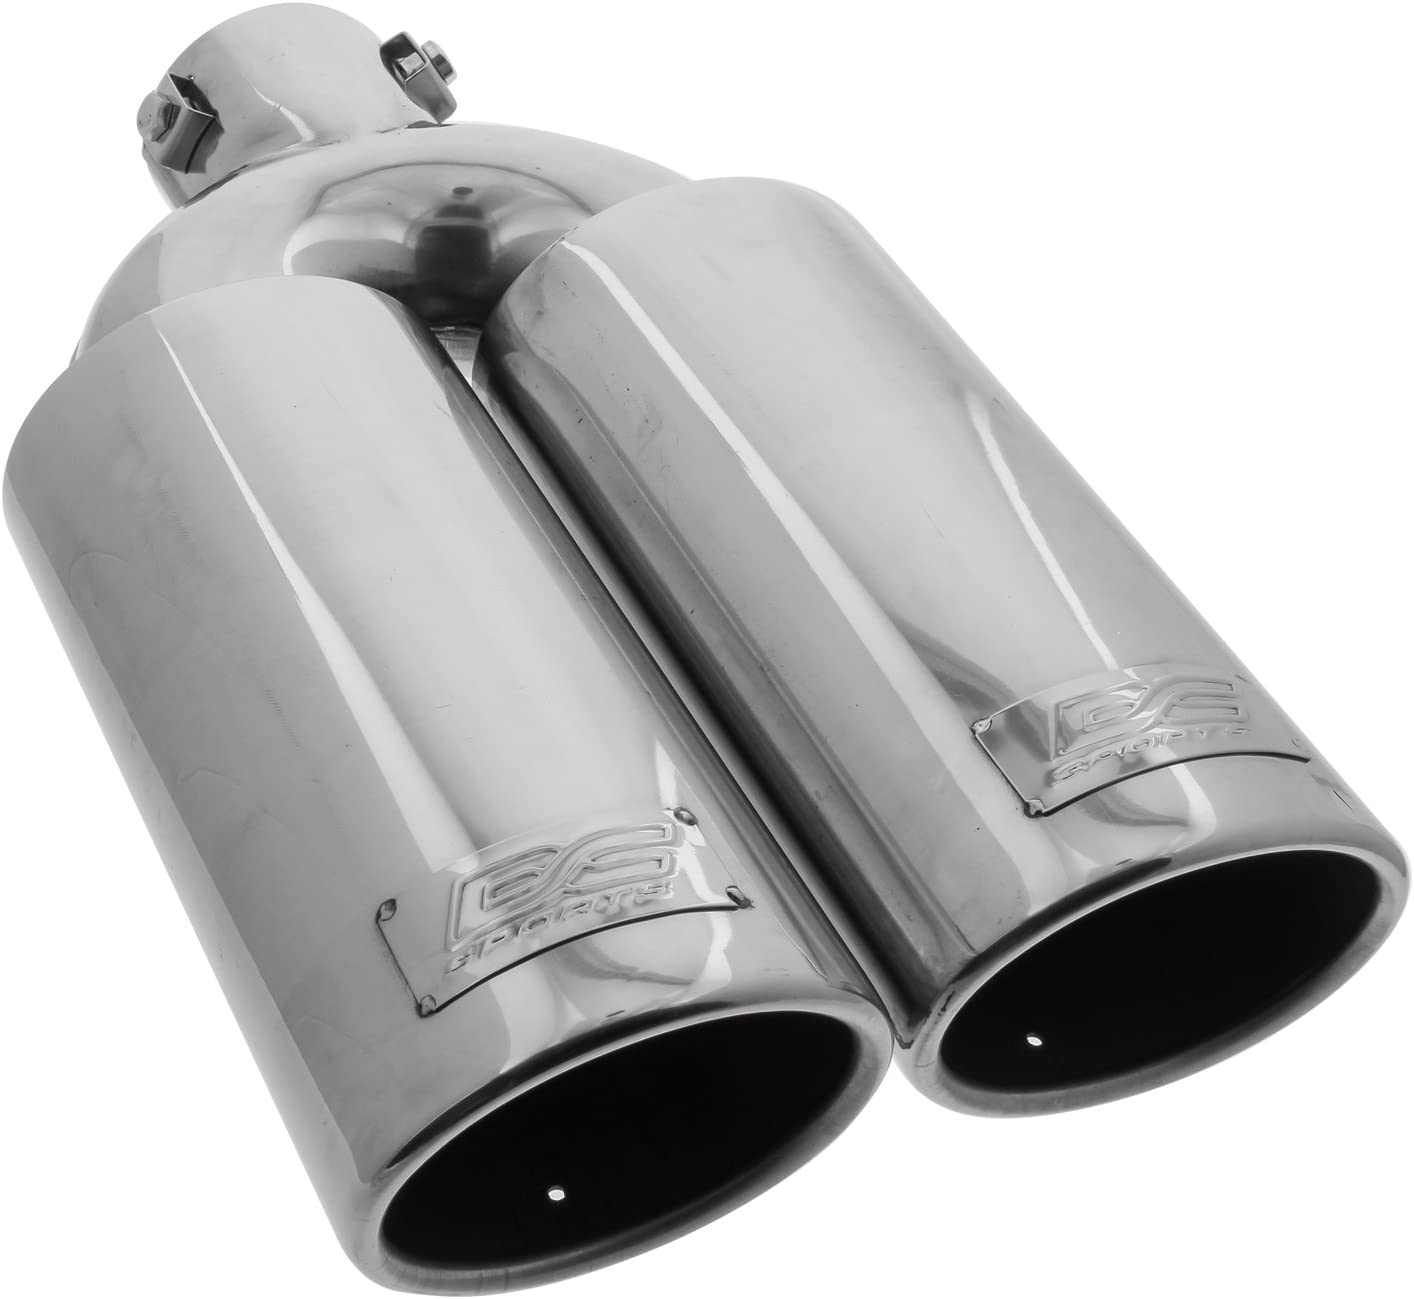 DC Sport EX-2024 Stainless Steel Slant Cut Bolt-on Exhaust Tip